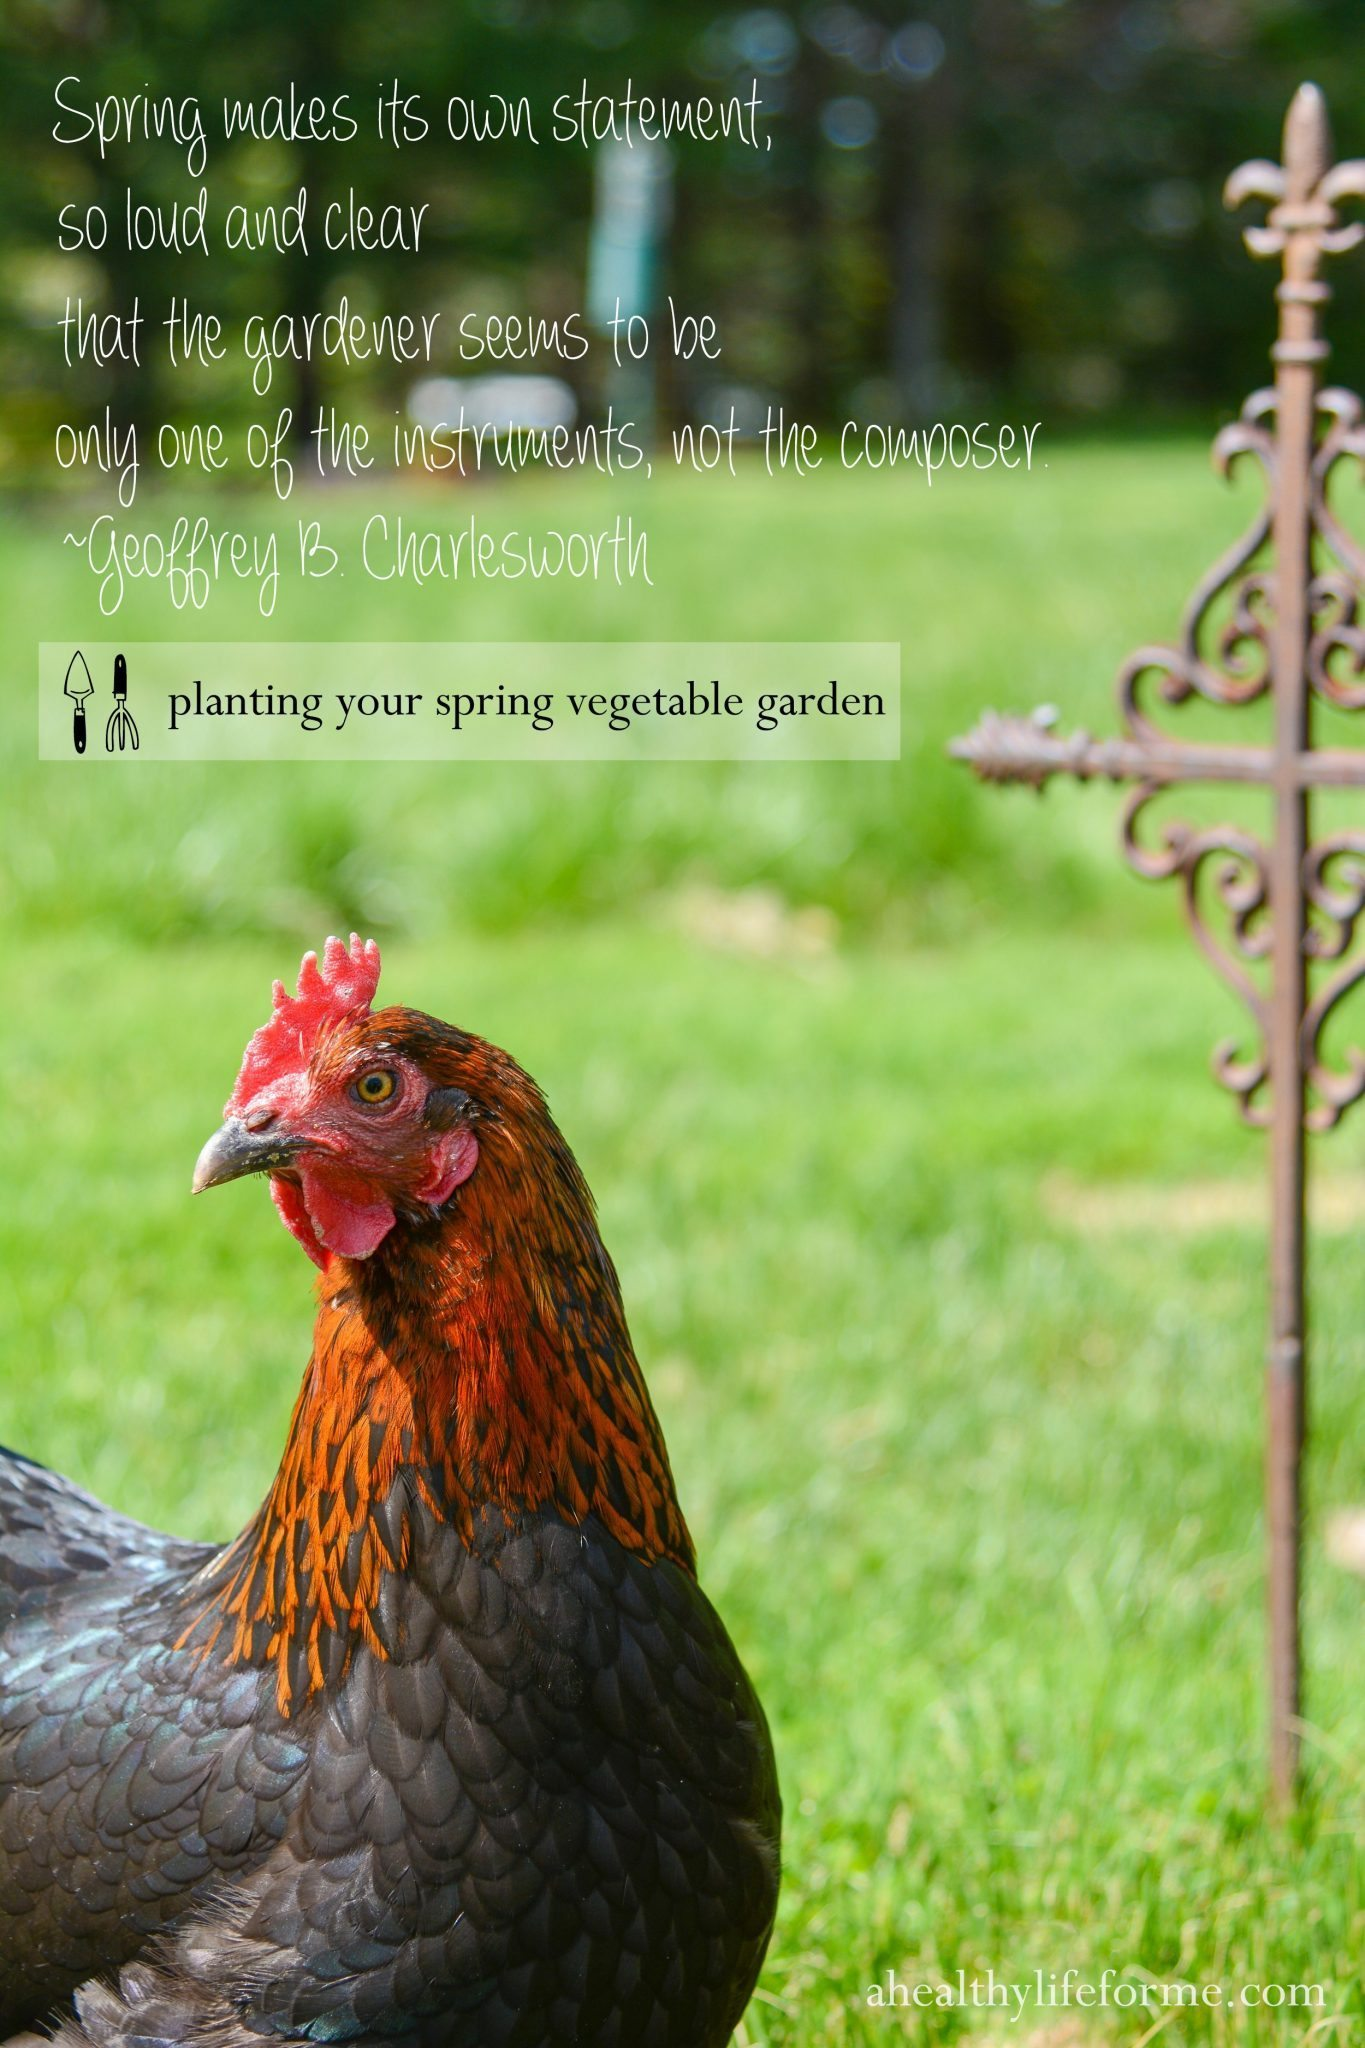 chickens in the spring garden planting your spring vegetable garden